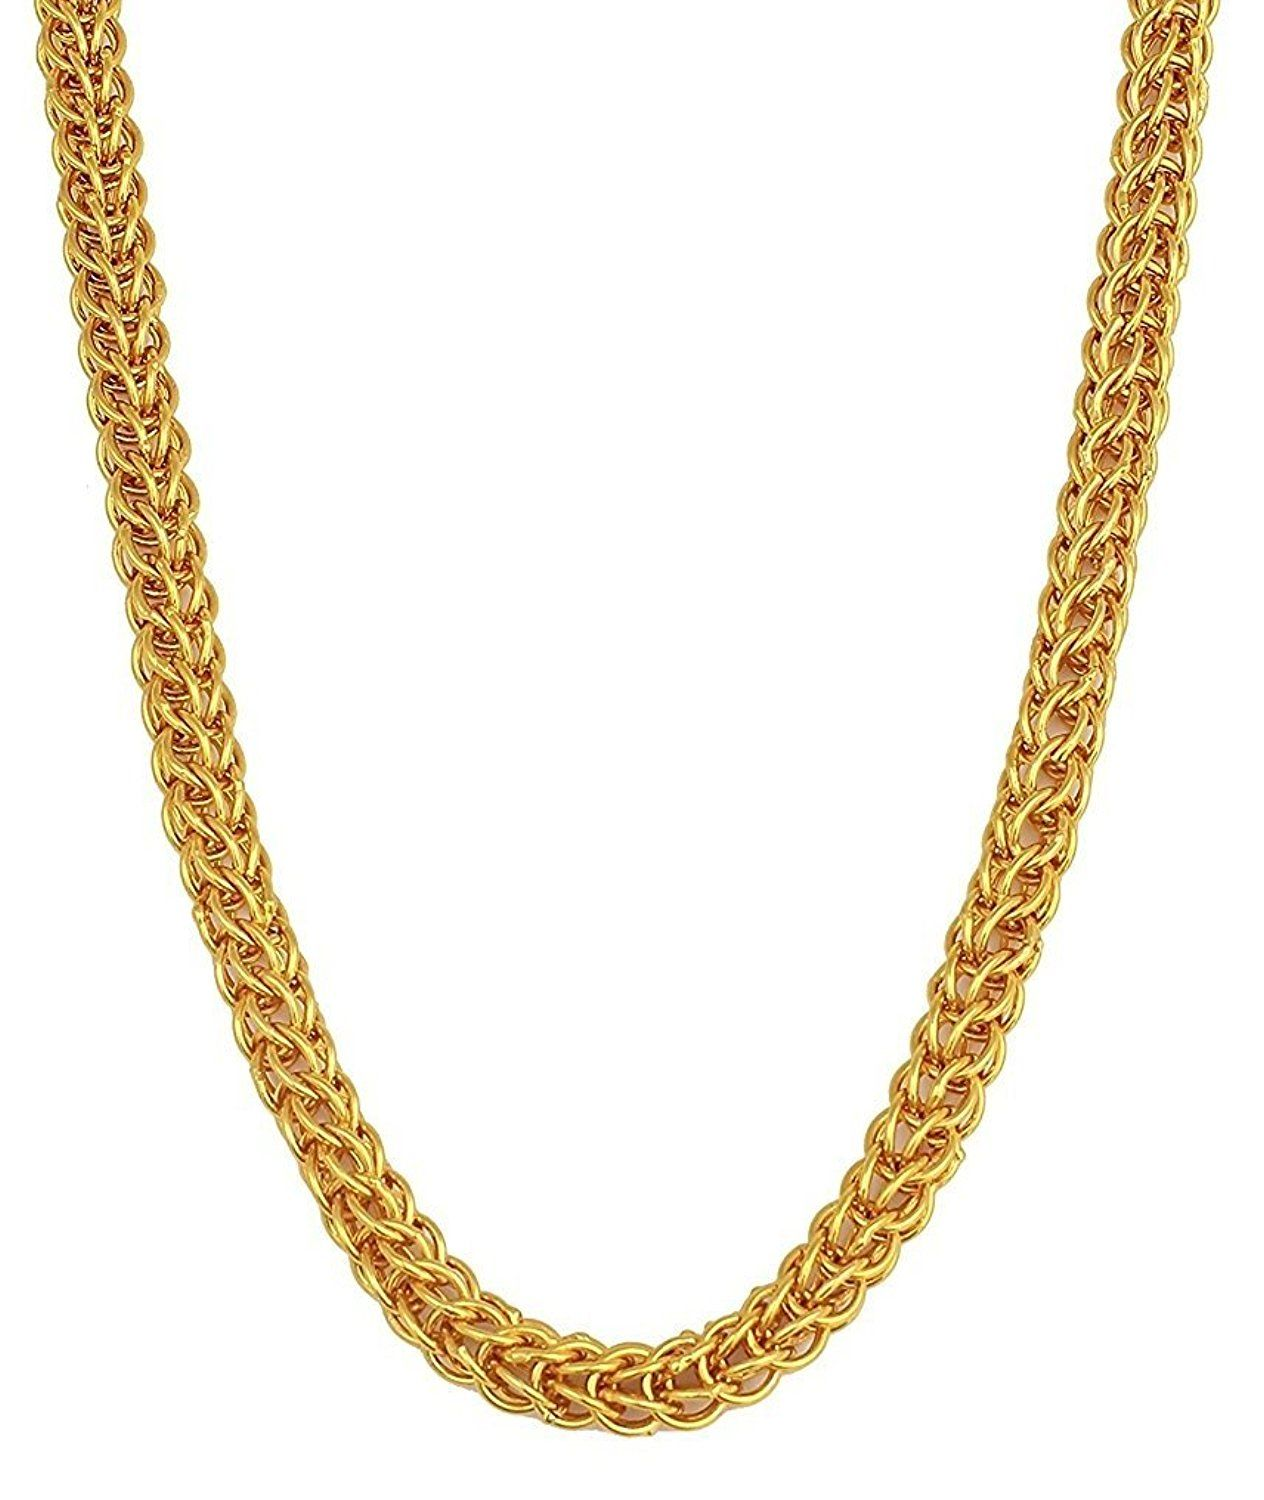 Gold Chain Designs For Mens With Weight Gold Chain Designs With Price And Weight Gold Chain Design Cata Gold Chains For Men Real Gold Chains Silver Chain Style